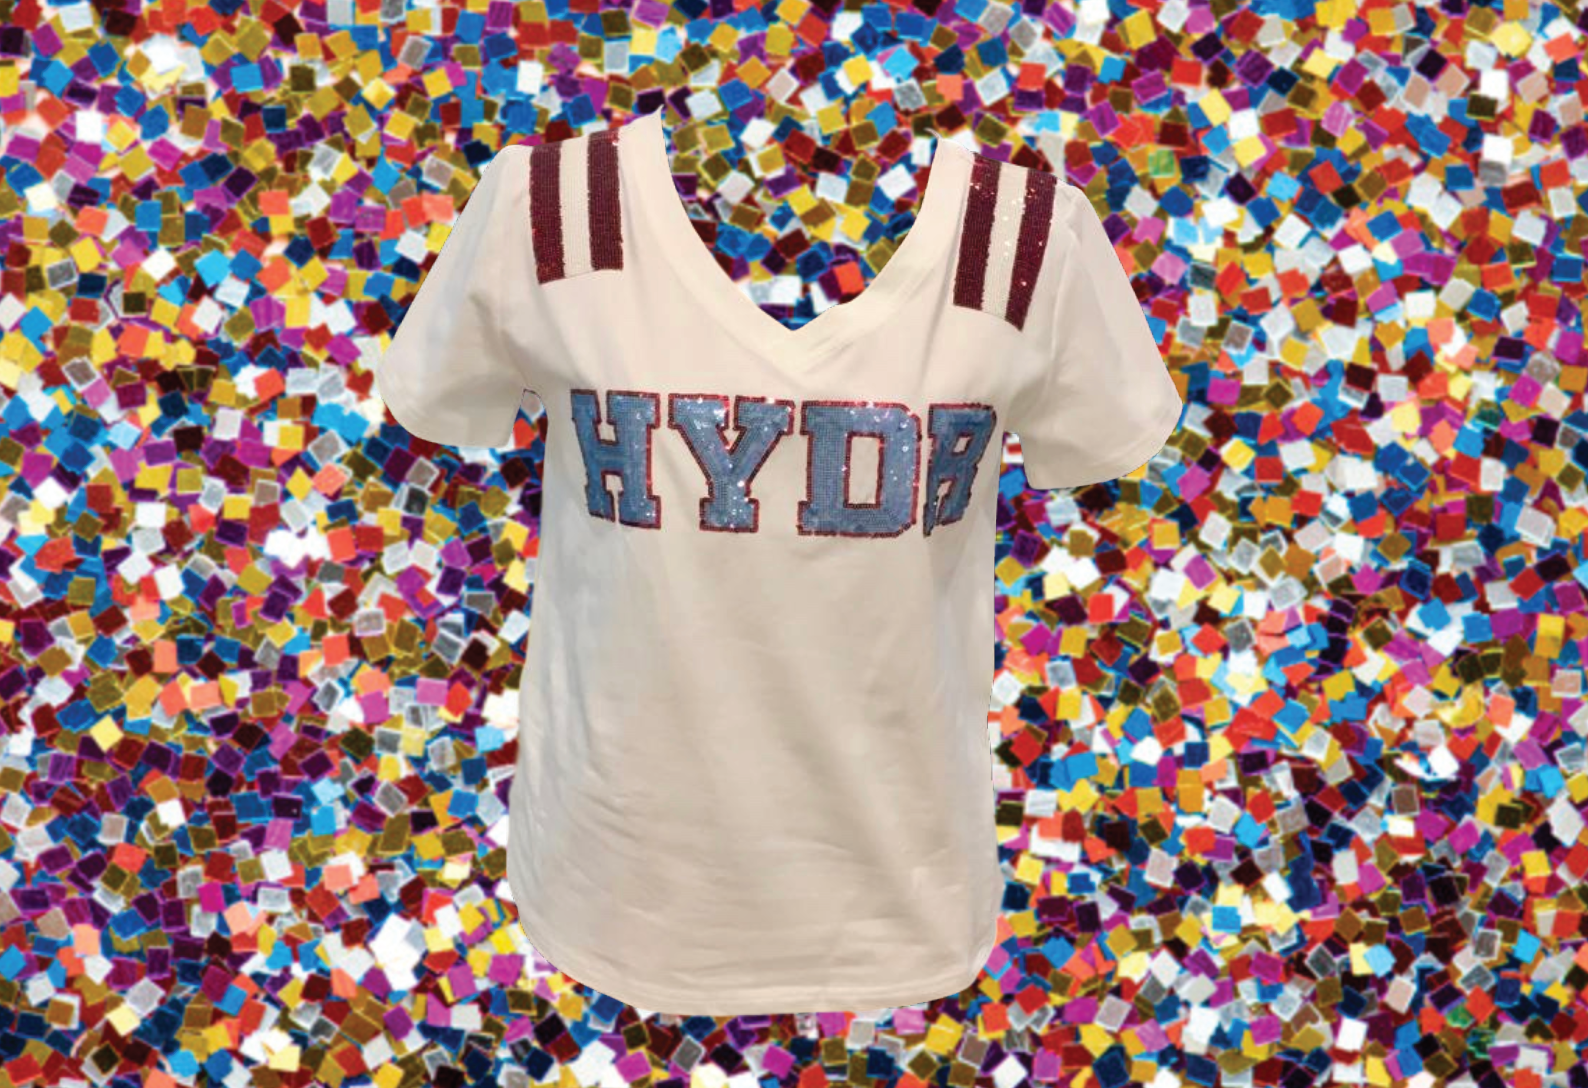 HYDR White Ole Miss Sequin Jersey Tee